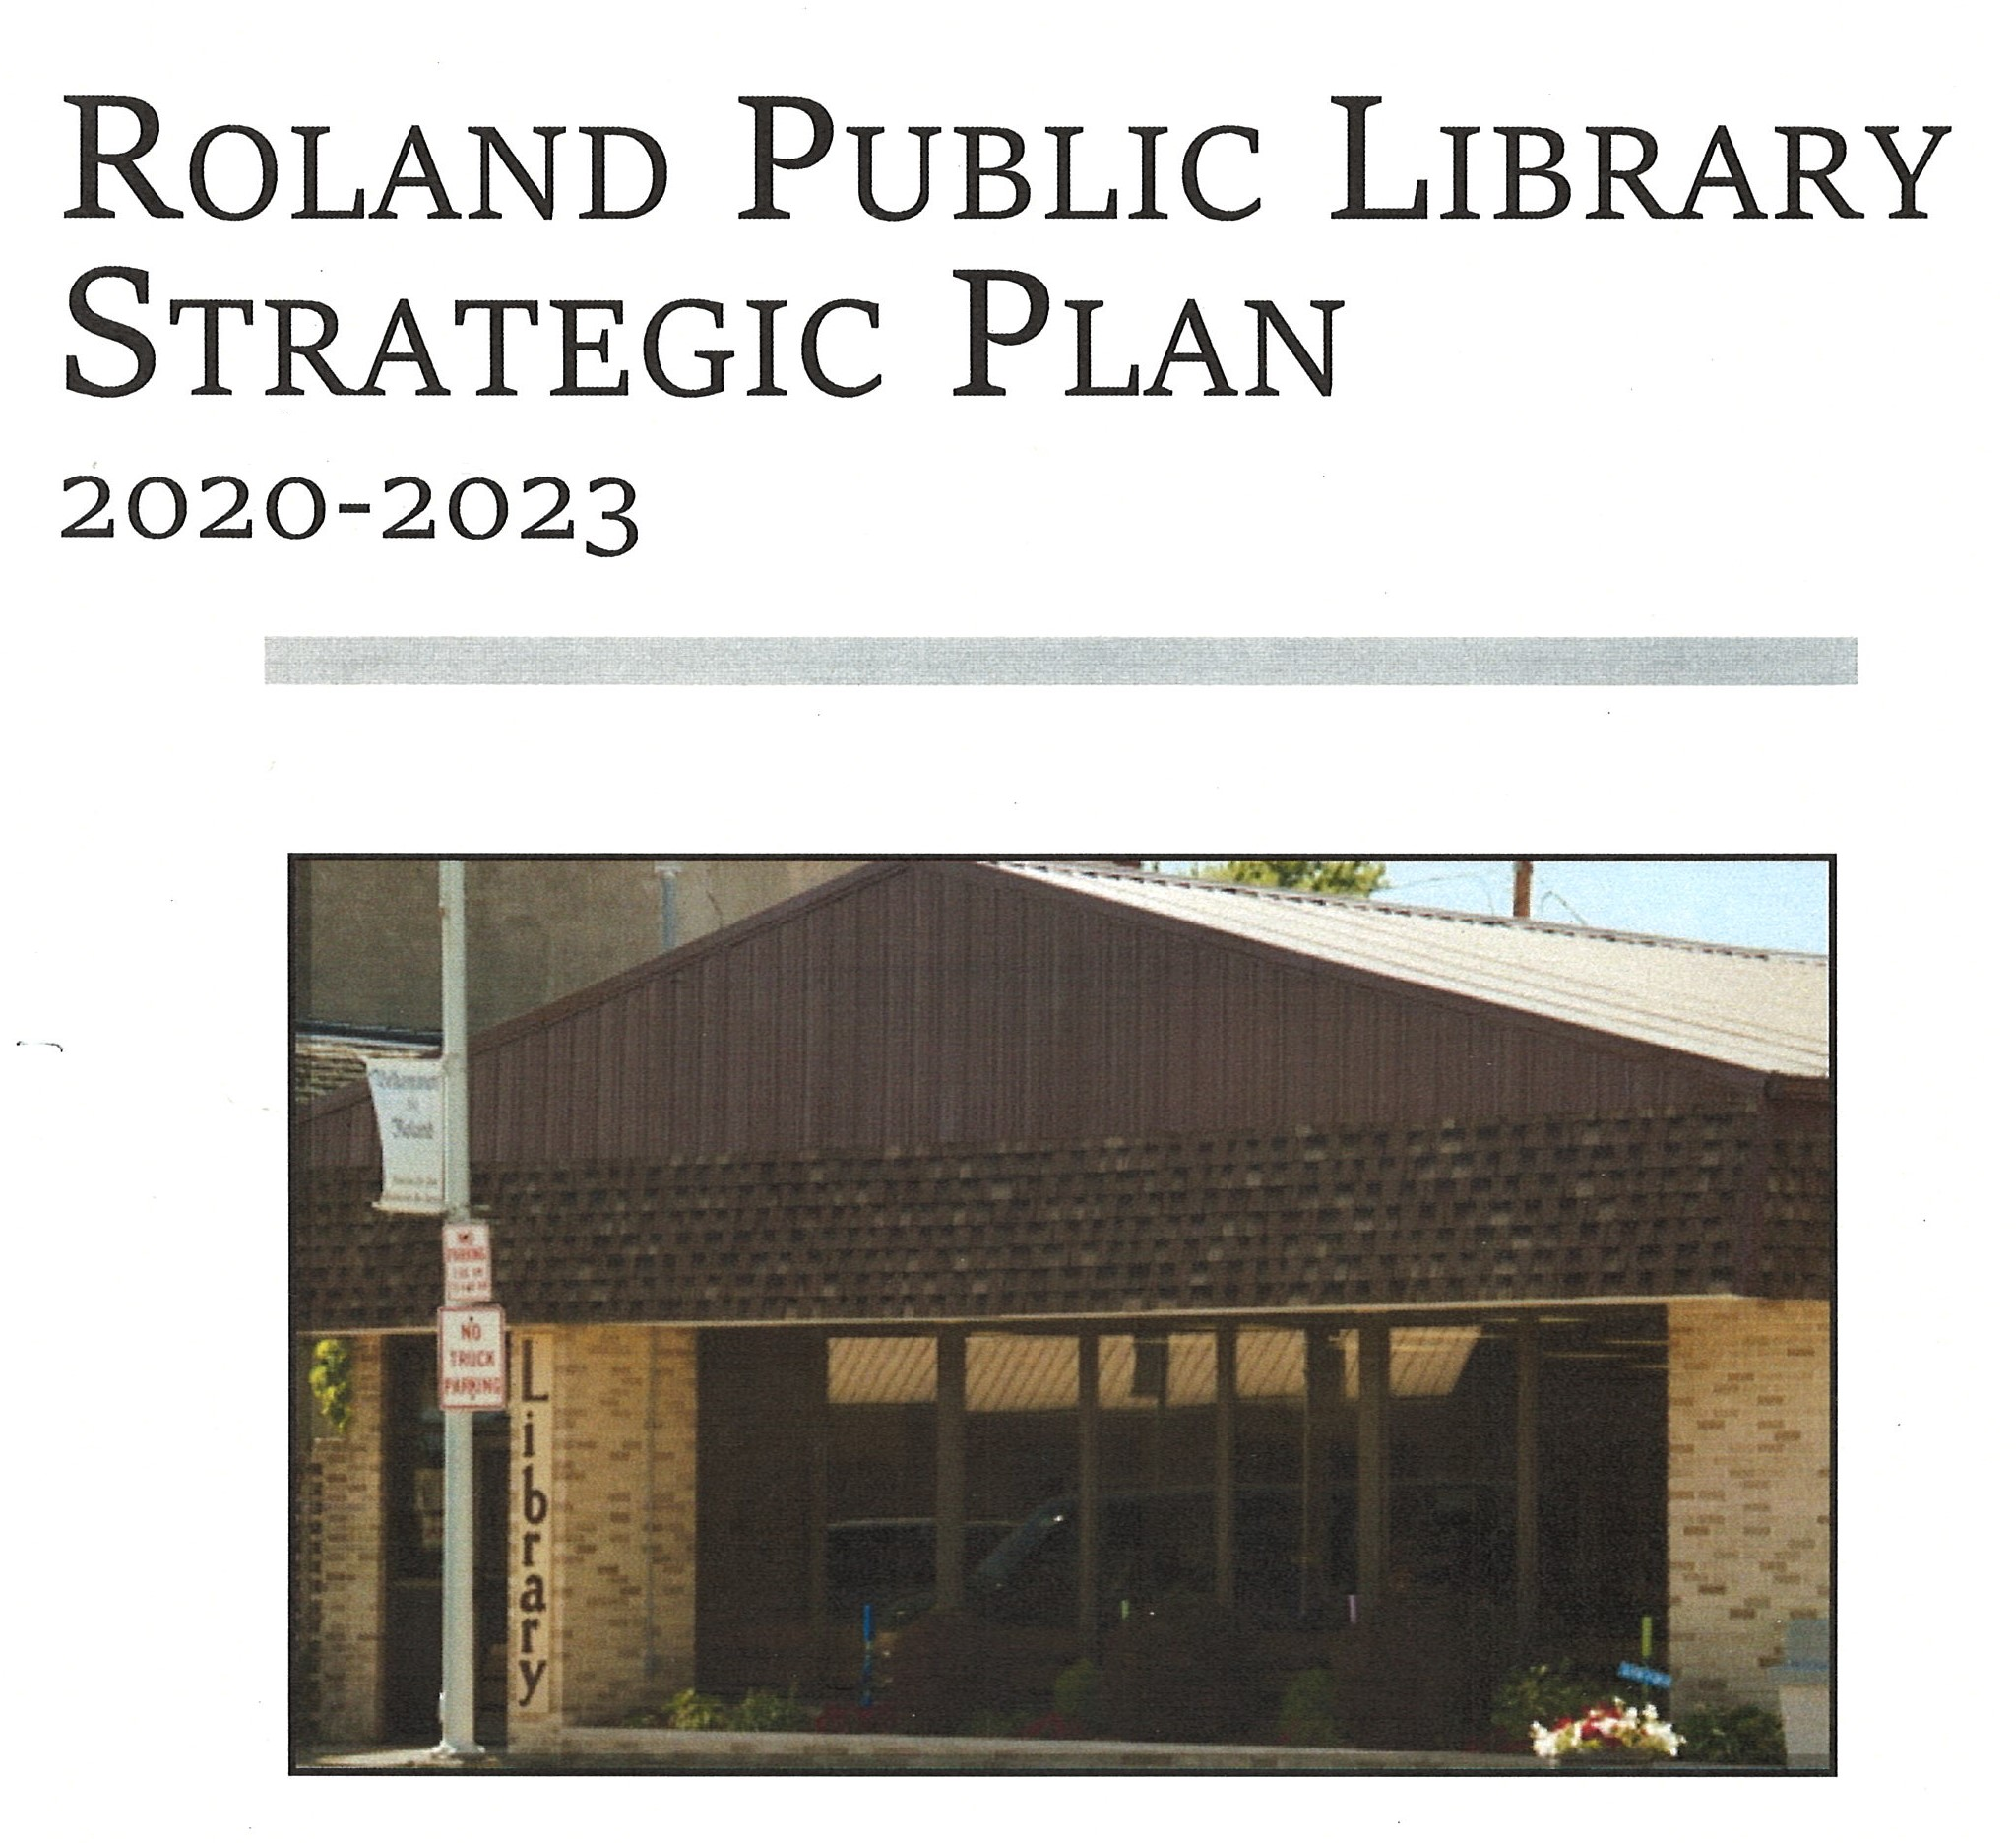 strategic plan cover.jpg